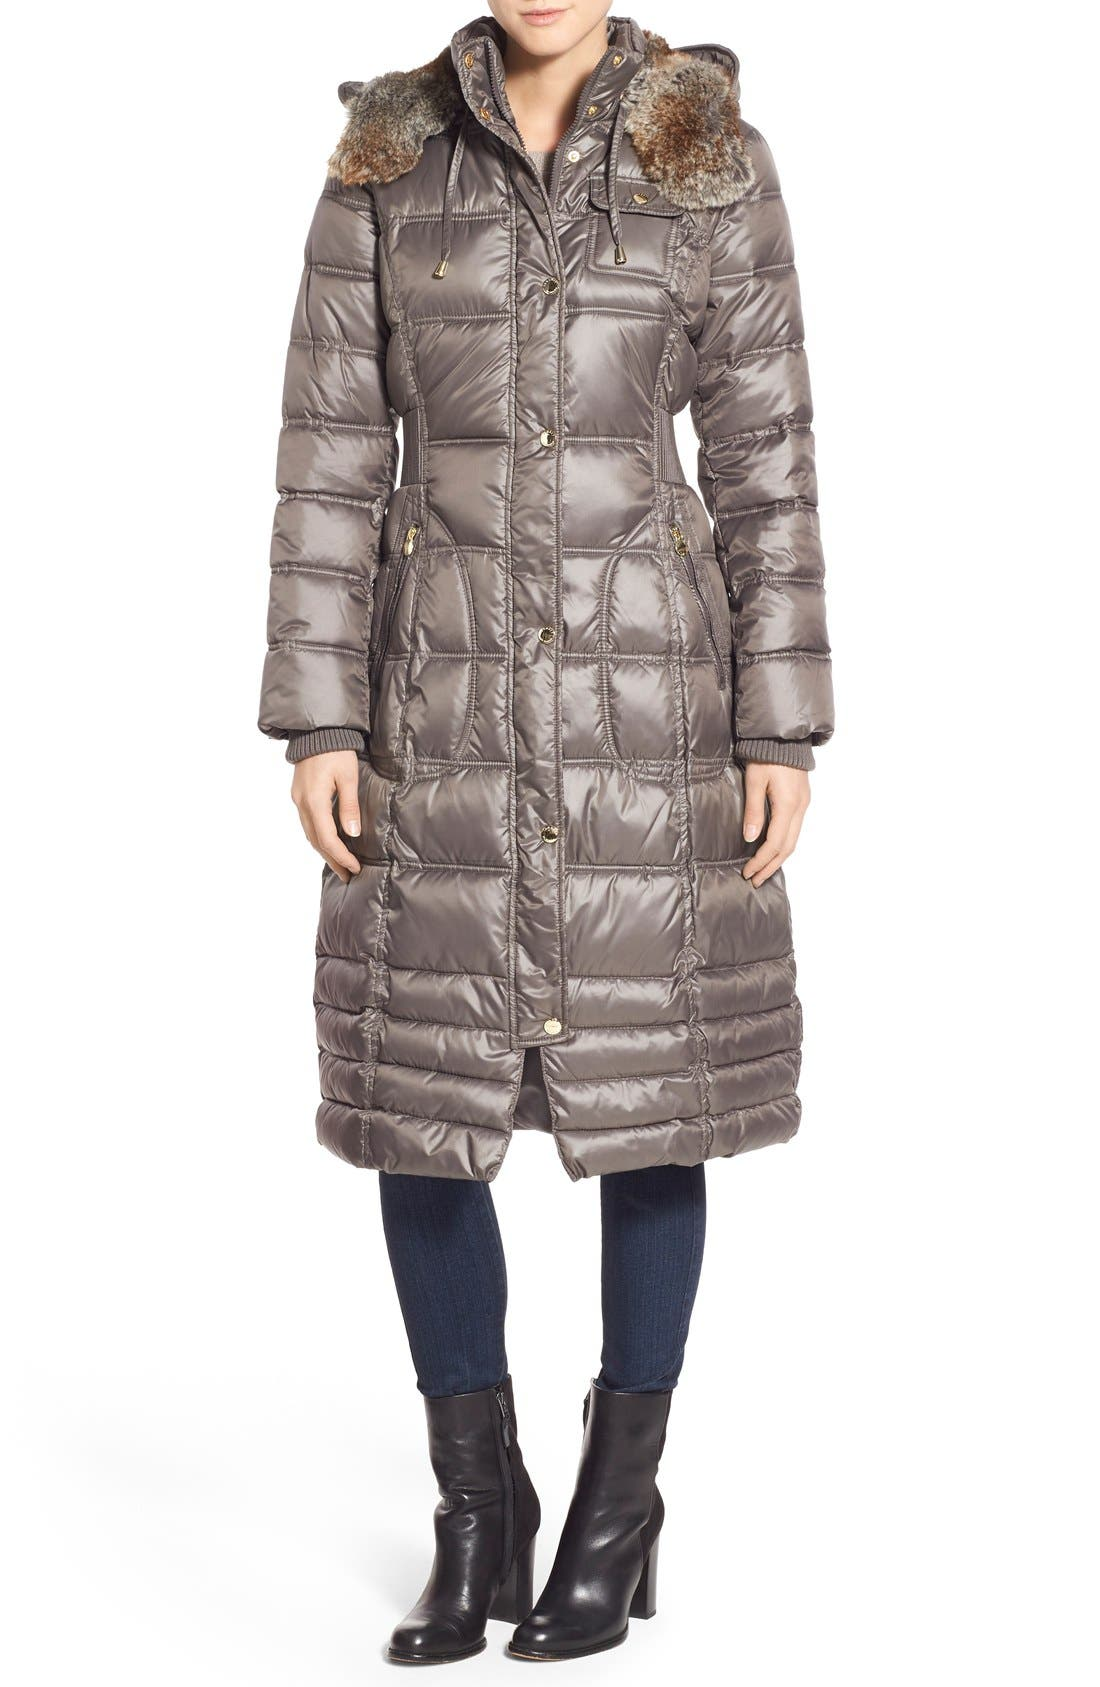 Main Image - Laundry by Design Quilted Coat with Faux Fur Lined Hood